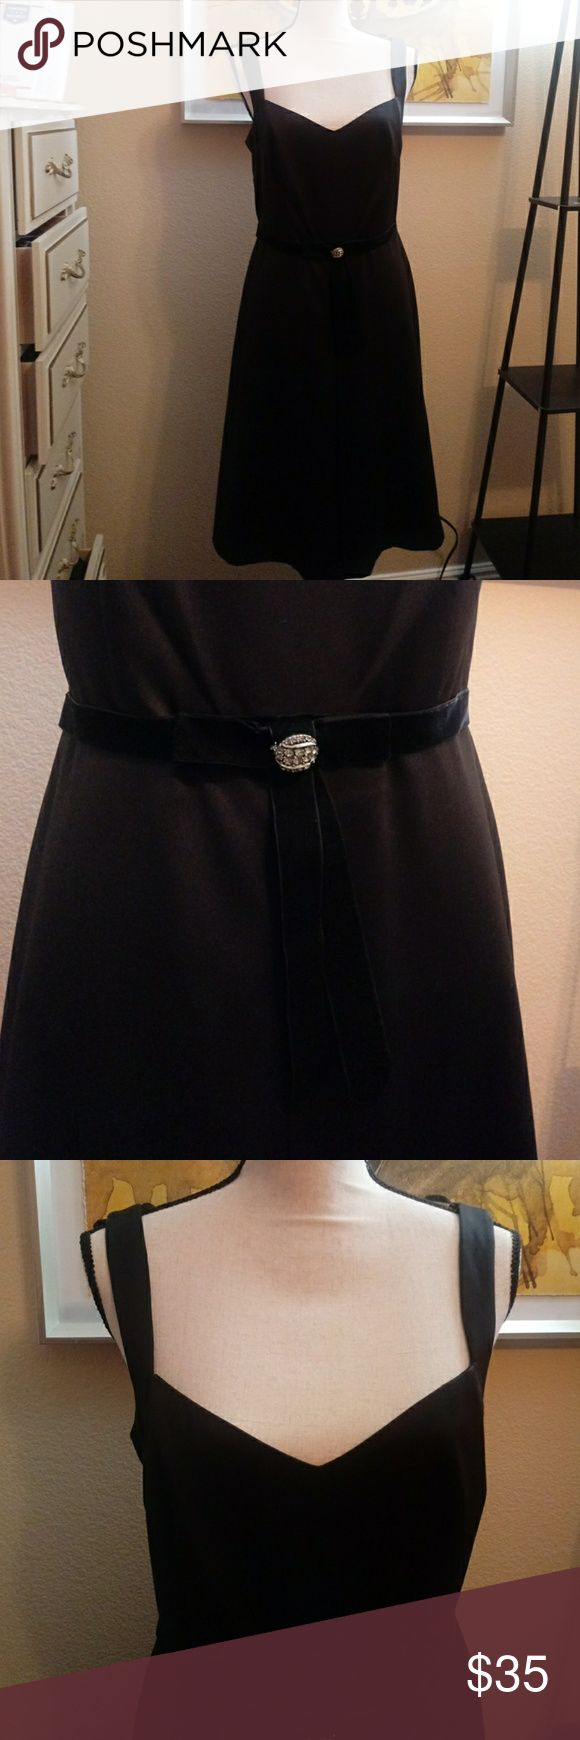 """EUC Laundry Shelli Segal Black Cocktail Dress 6 This gorgeous black size 6 Laundry Shelli Segal Dress is a poly blend but reads satiny. Features beautiful built in velvety belt at waist with bow and rhinestone embellished pin at waist. Also has really cool snaps at straps to keep bra hidden. In very good condition, only worn 2-3 times. No flaws i can find. Has """"A line"""" shape which gives great swingy shape.  Bust-16.5"""" Waist-15"""" Overall length-38.5 (from shoulder to hem)  Bundle & Save. Open…"""